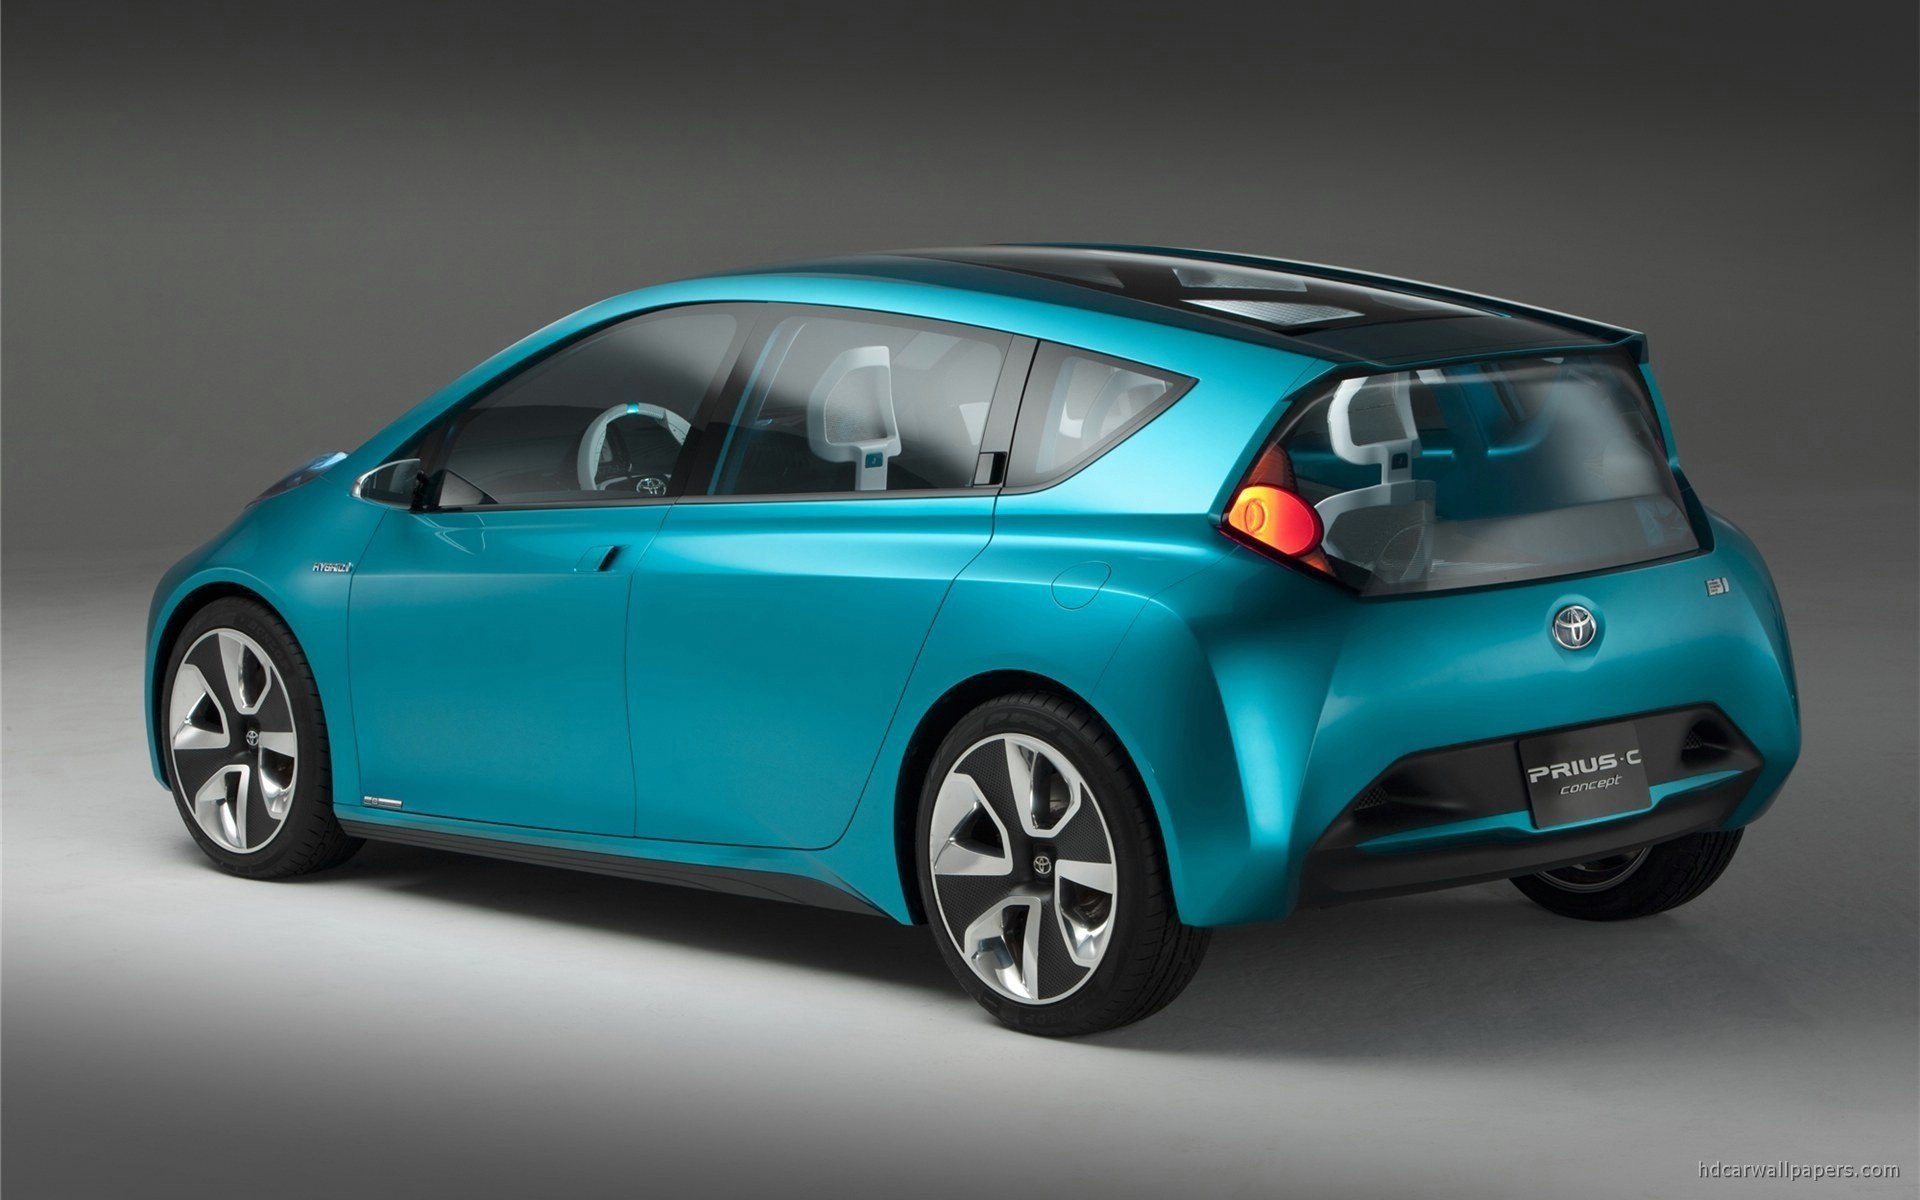 New Toyota Prius C 3D Car Hd Wallpaper My Site On This Month